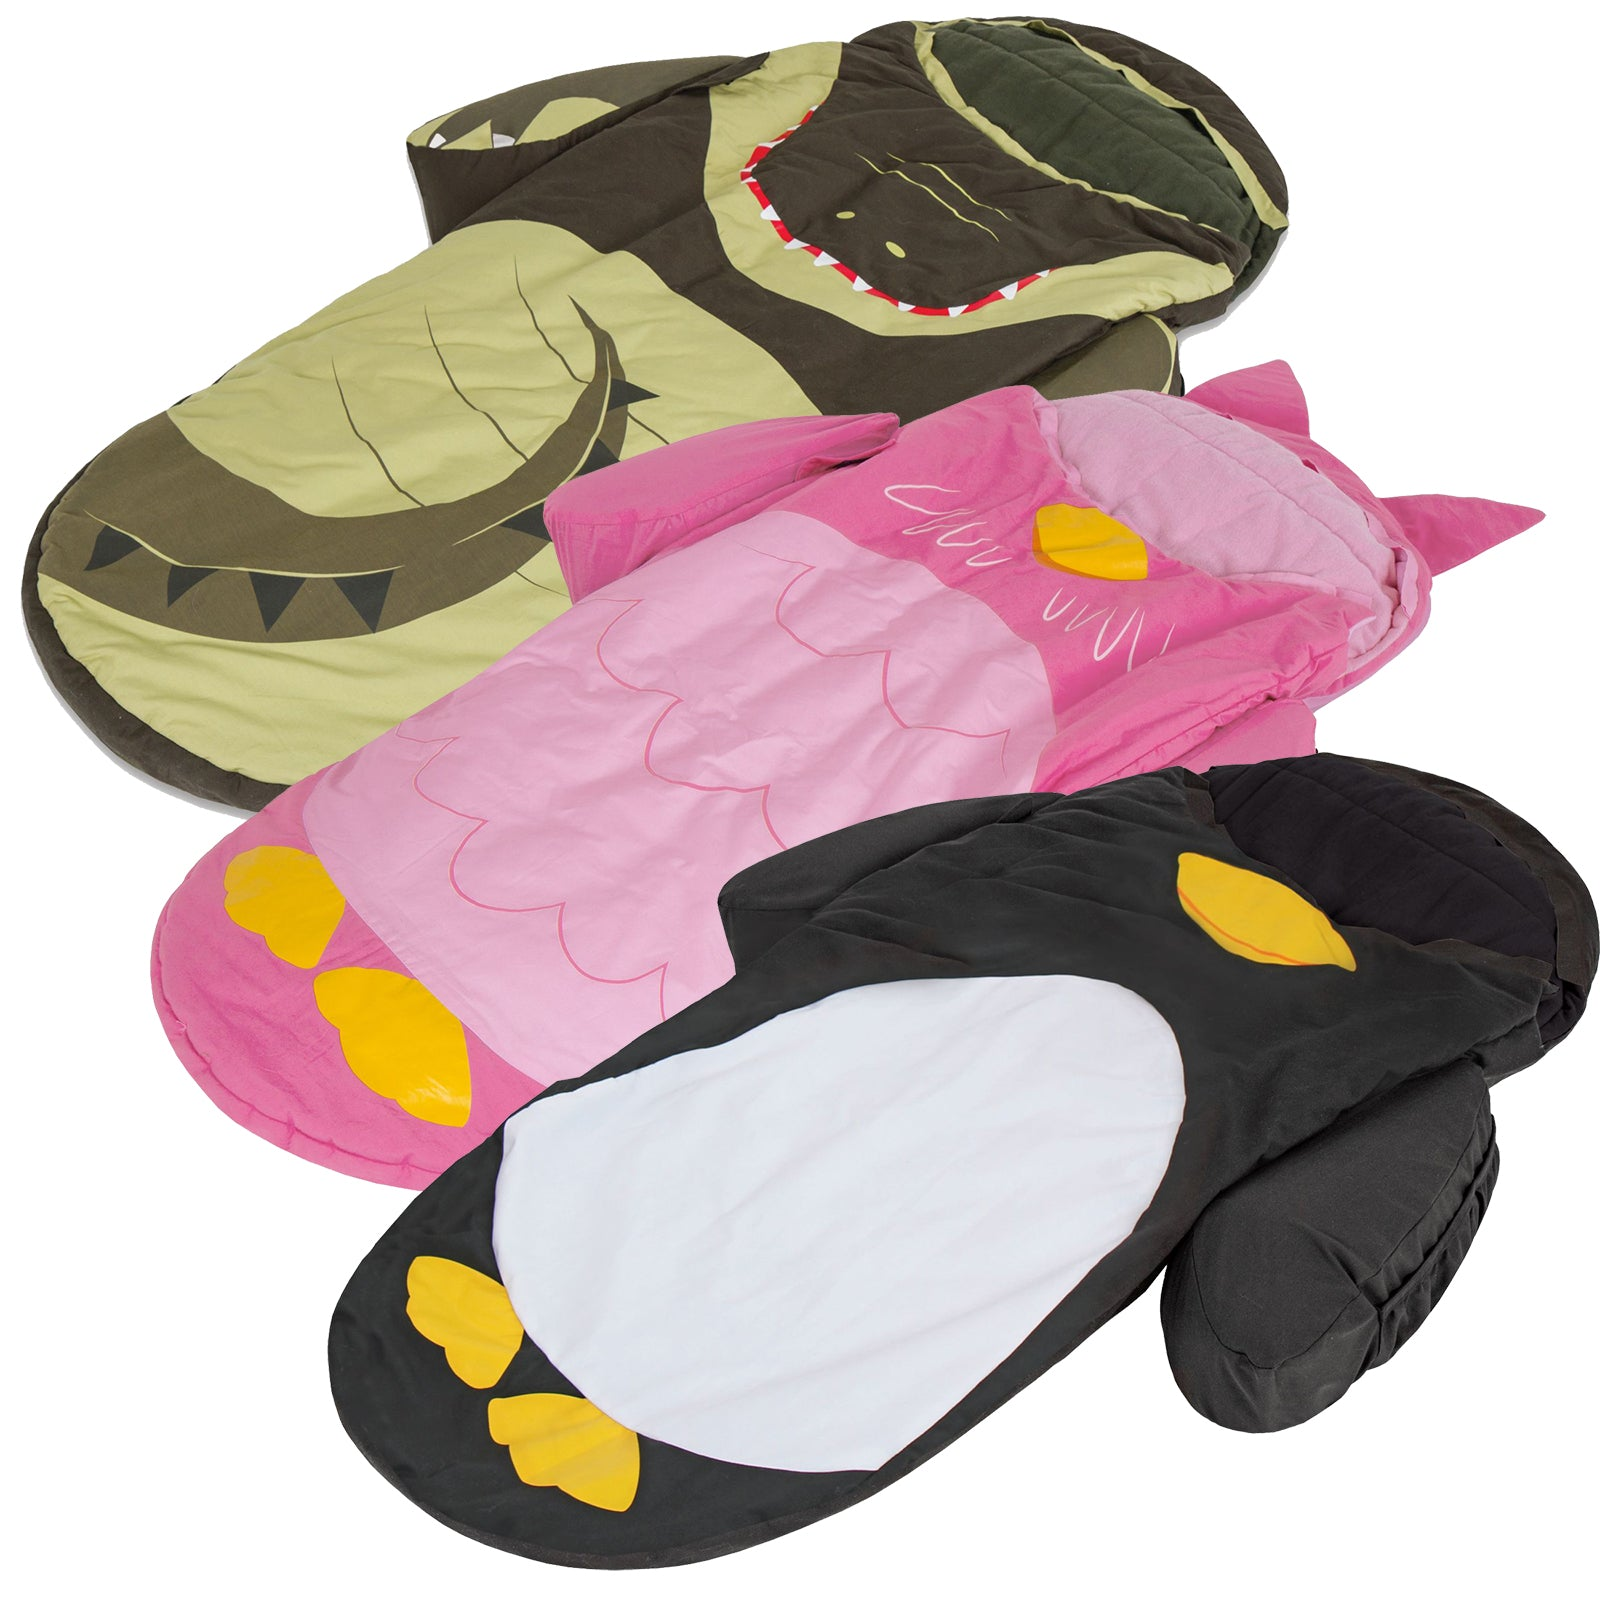 Range of Crocodile, Owl and Penguin Snuggle Pods; children's air bed for camping (similar to a ReadyBed)